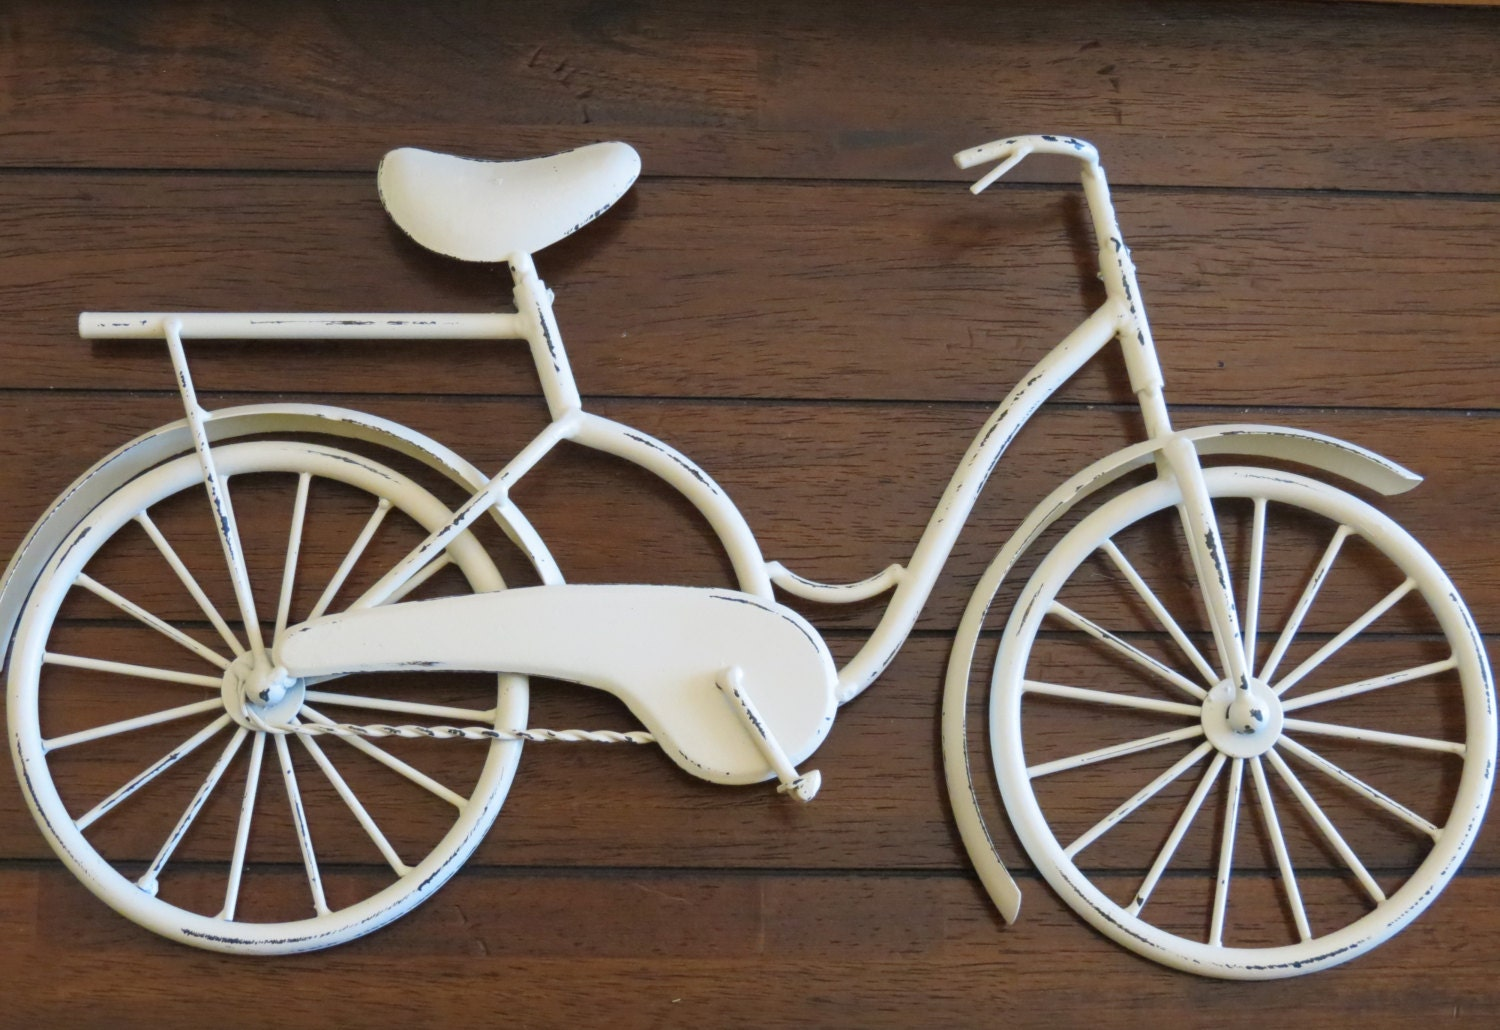 Metal Wall Decor Bicycle : Bike wall decor creamy white or pick color bicycle metal